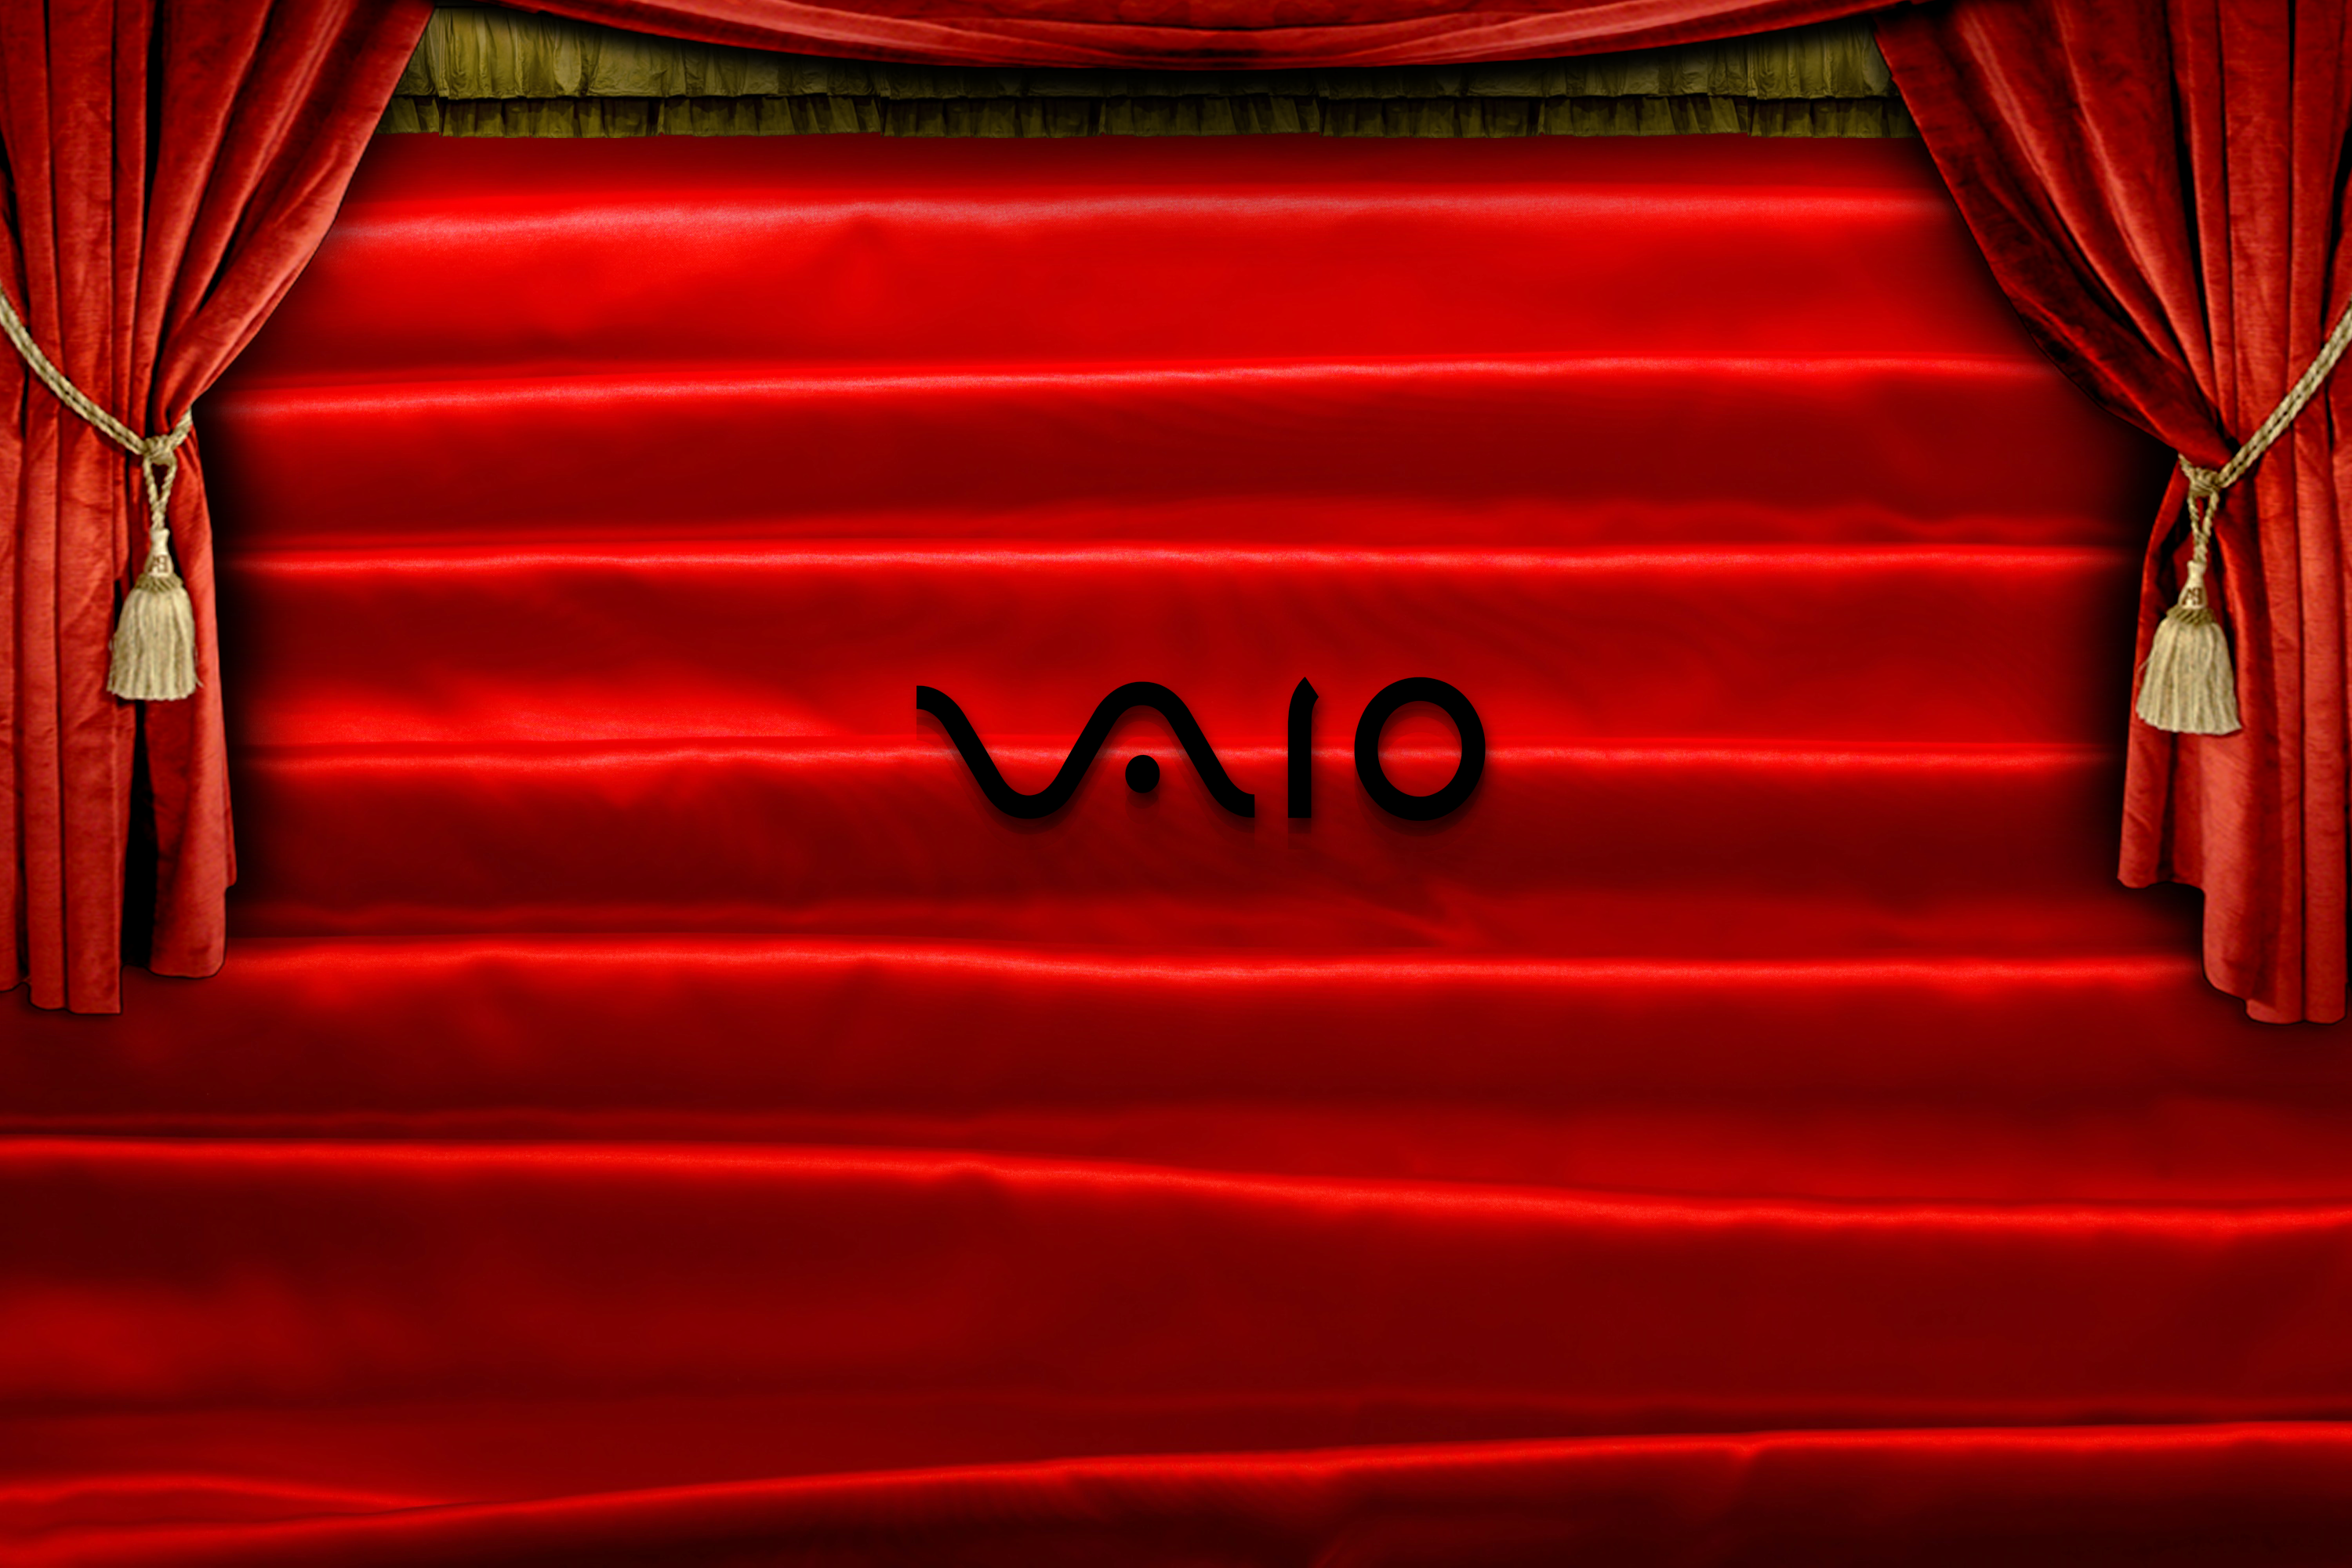 vaio red wallpaper by - photo #9